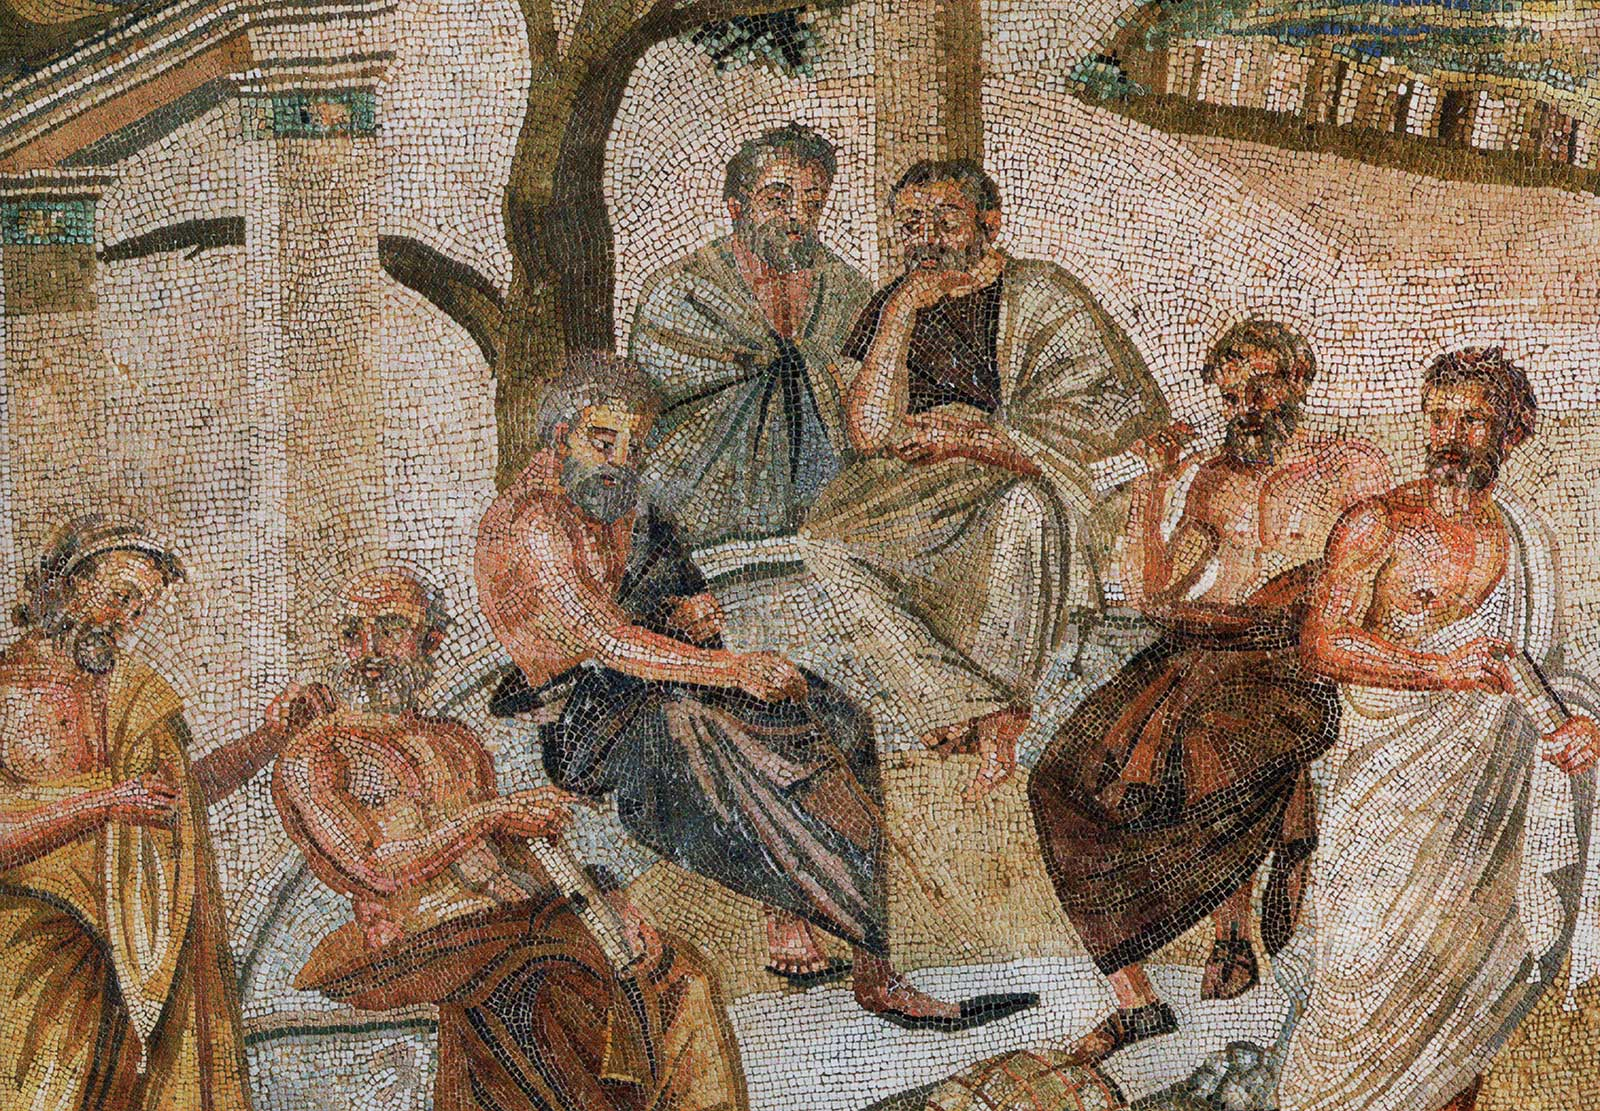 Plato holds forth, surrounded by four male student philosophers, under the shade of trees